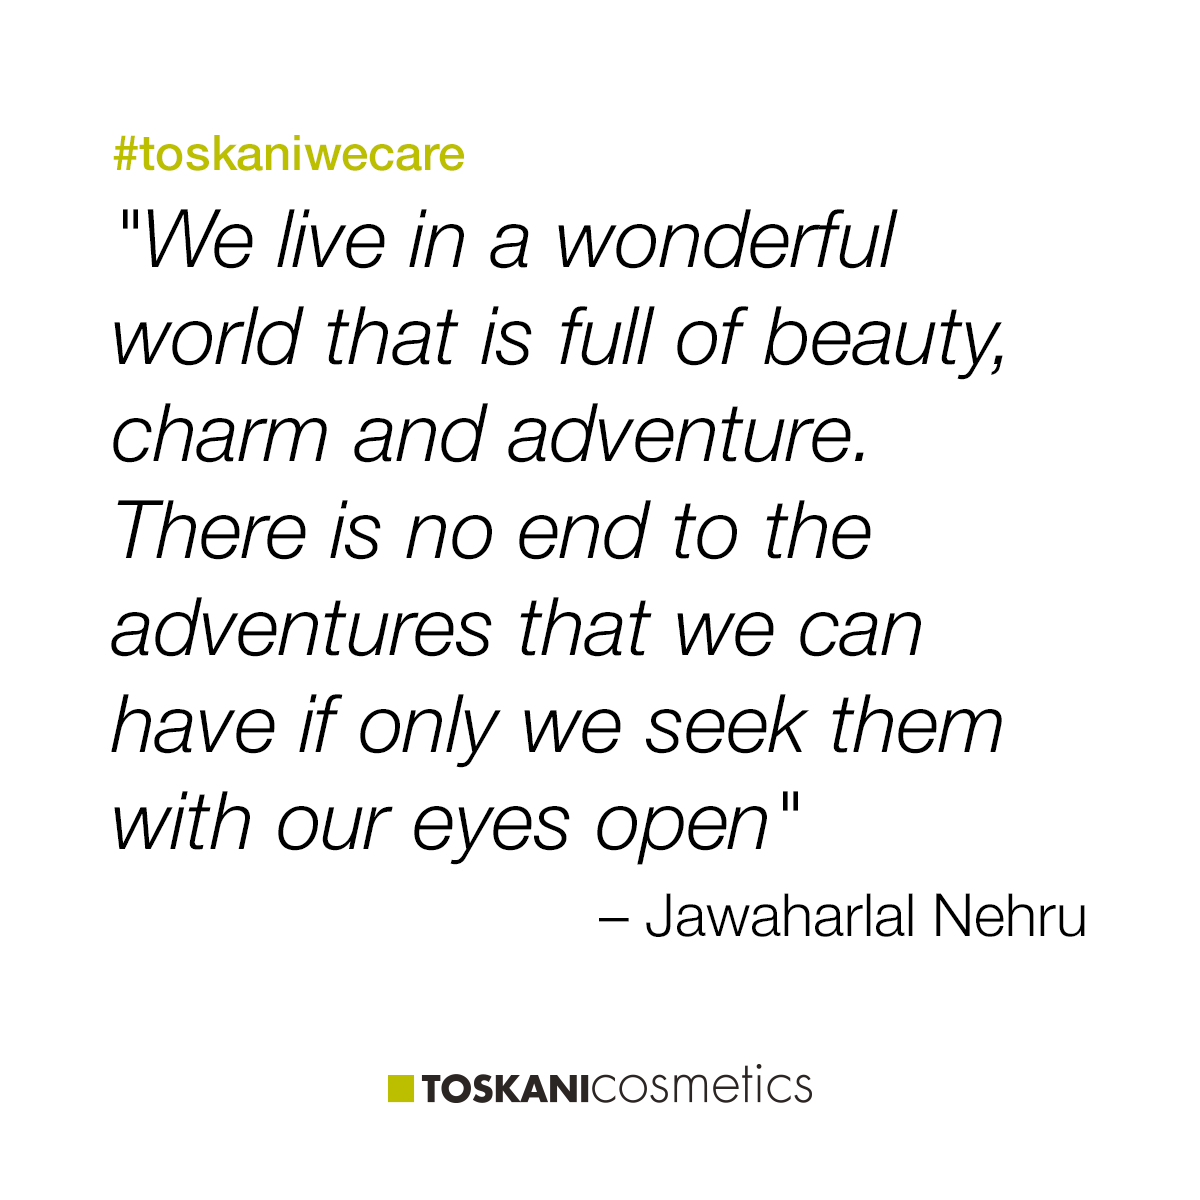 """We live in a wonderful world that is full of beauty, charm and adventure. There is no end to the adventures that we can have if only we seek them with our eyes open"" #toskaniwecare"